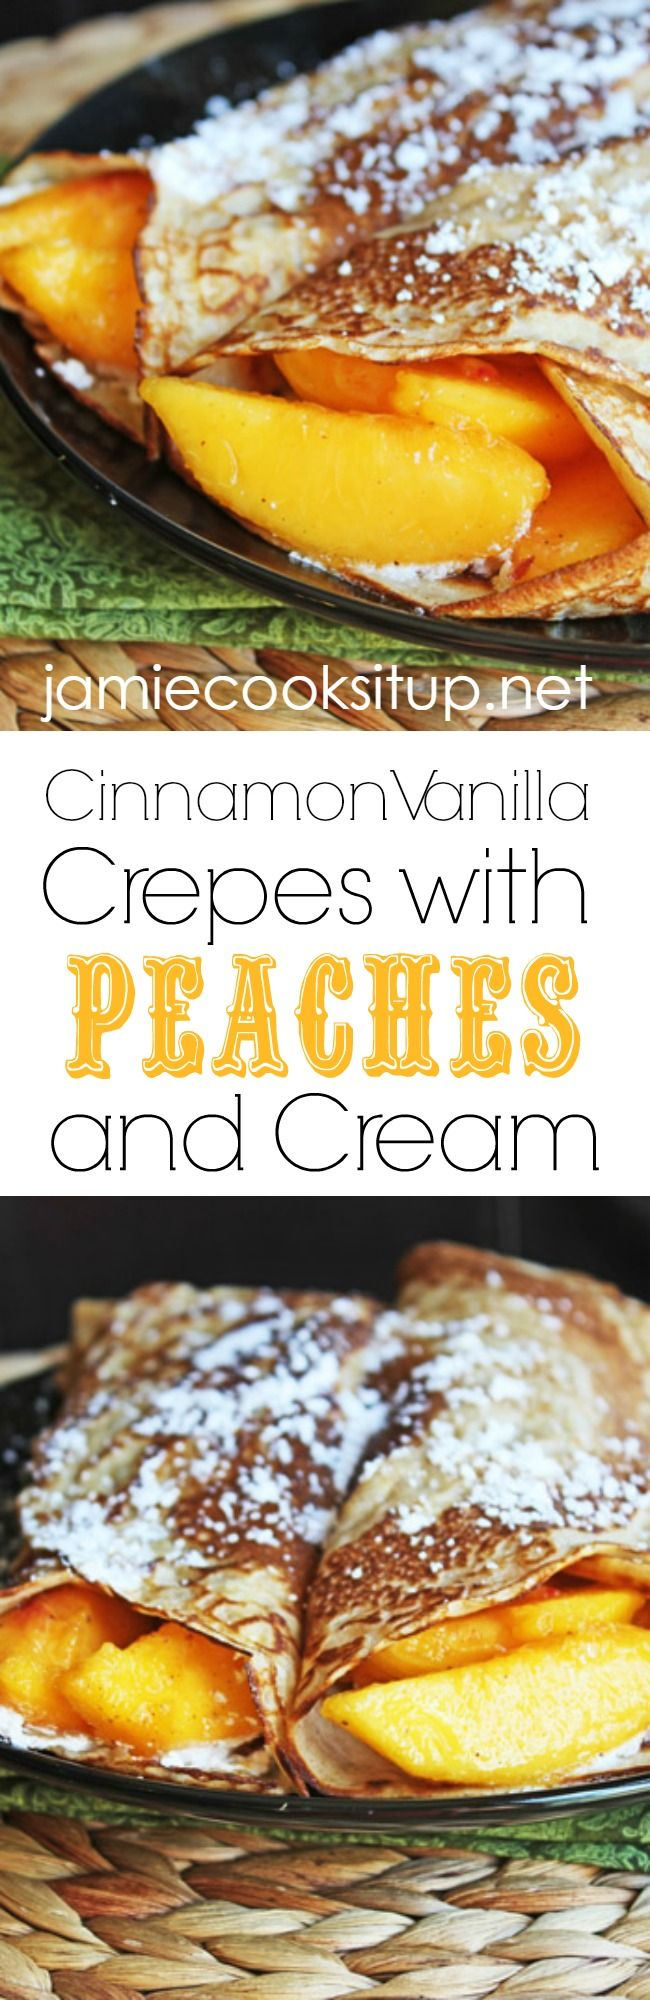 Cinnamon Vanlla Crepes with Peaches and Cream from Jamie Cooks It Up!